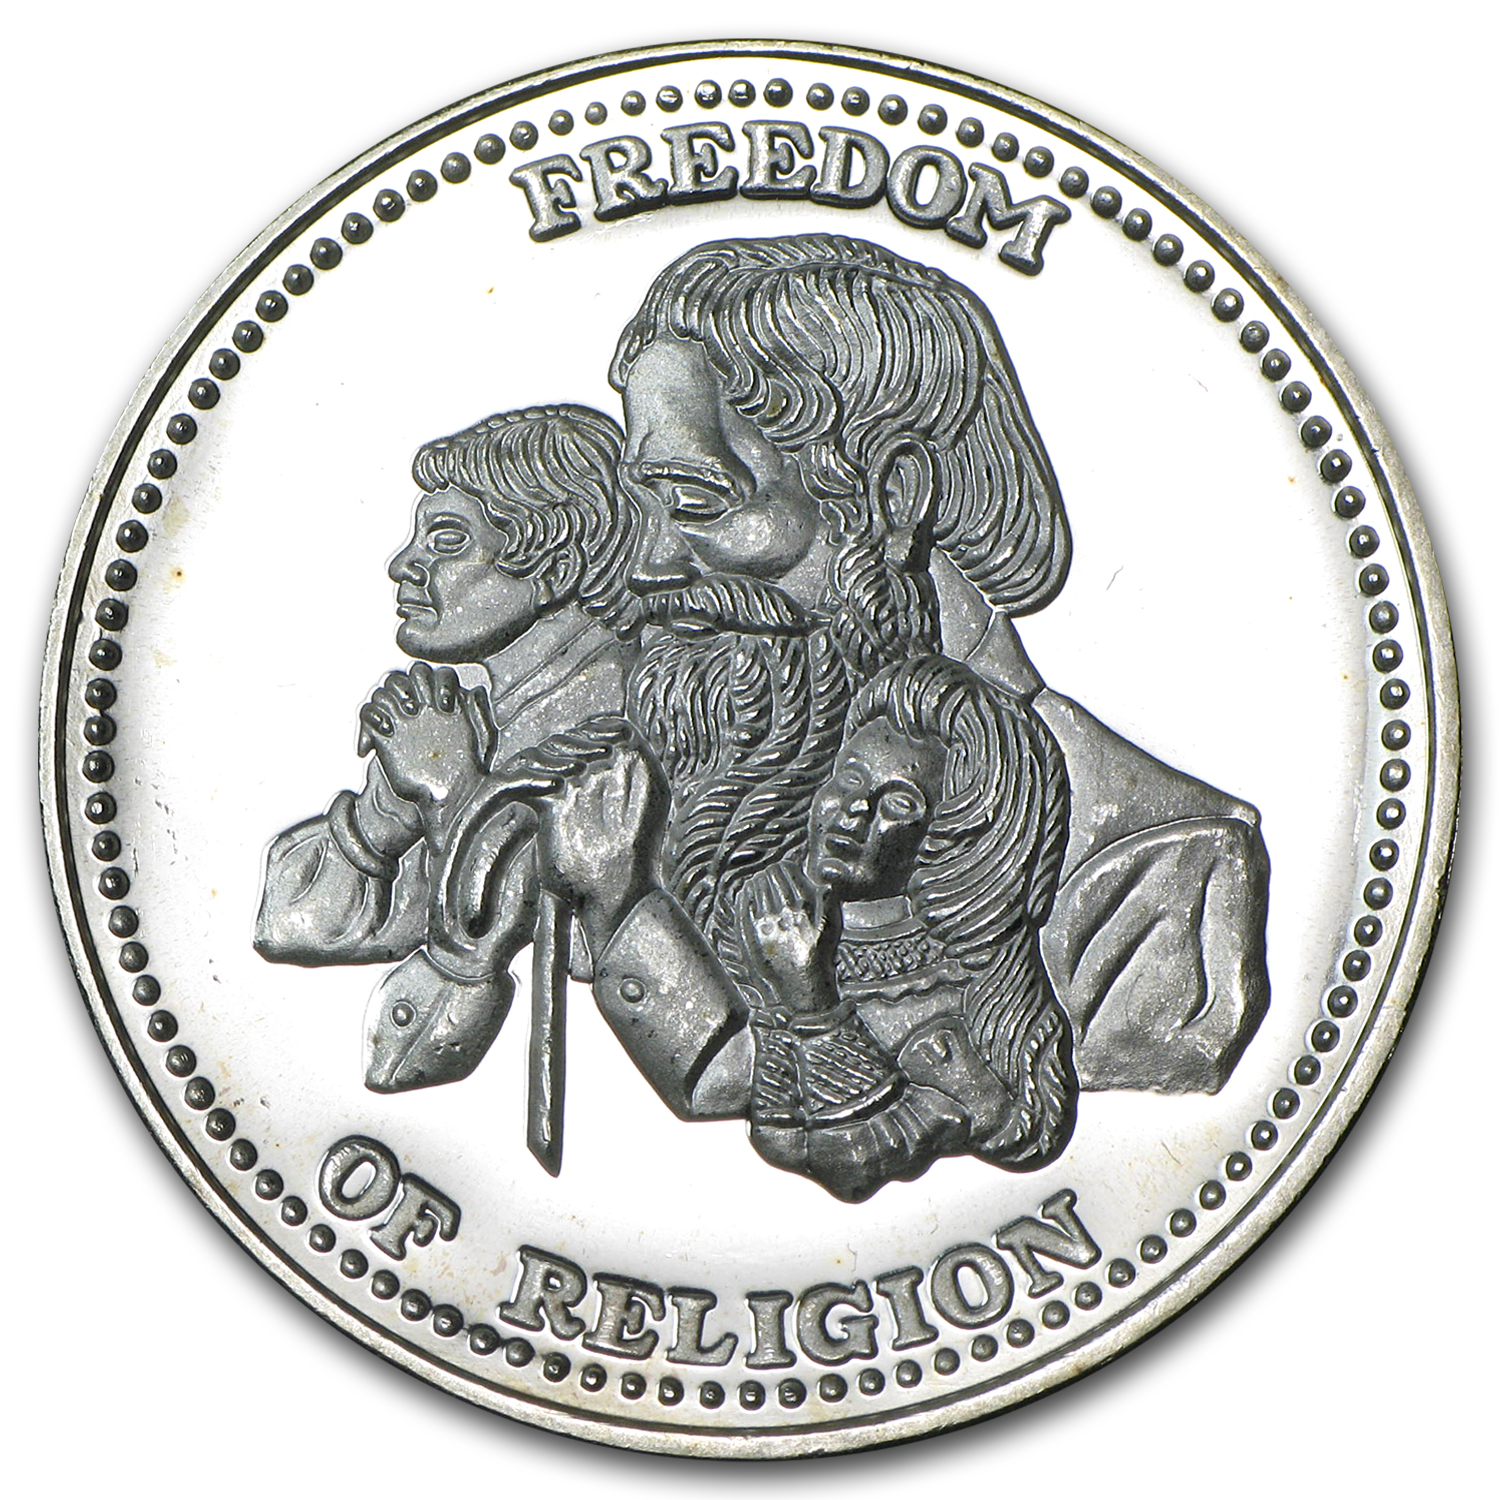 1 oz Silver Rounds - Johnson Matthey (Freedom of Religion)